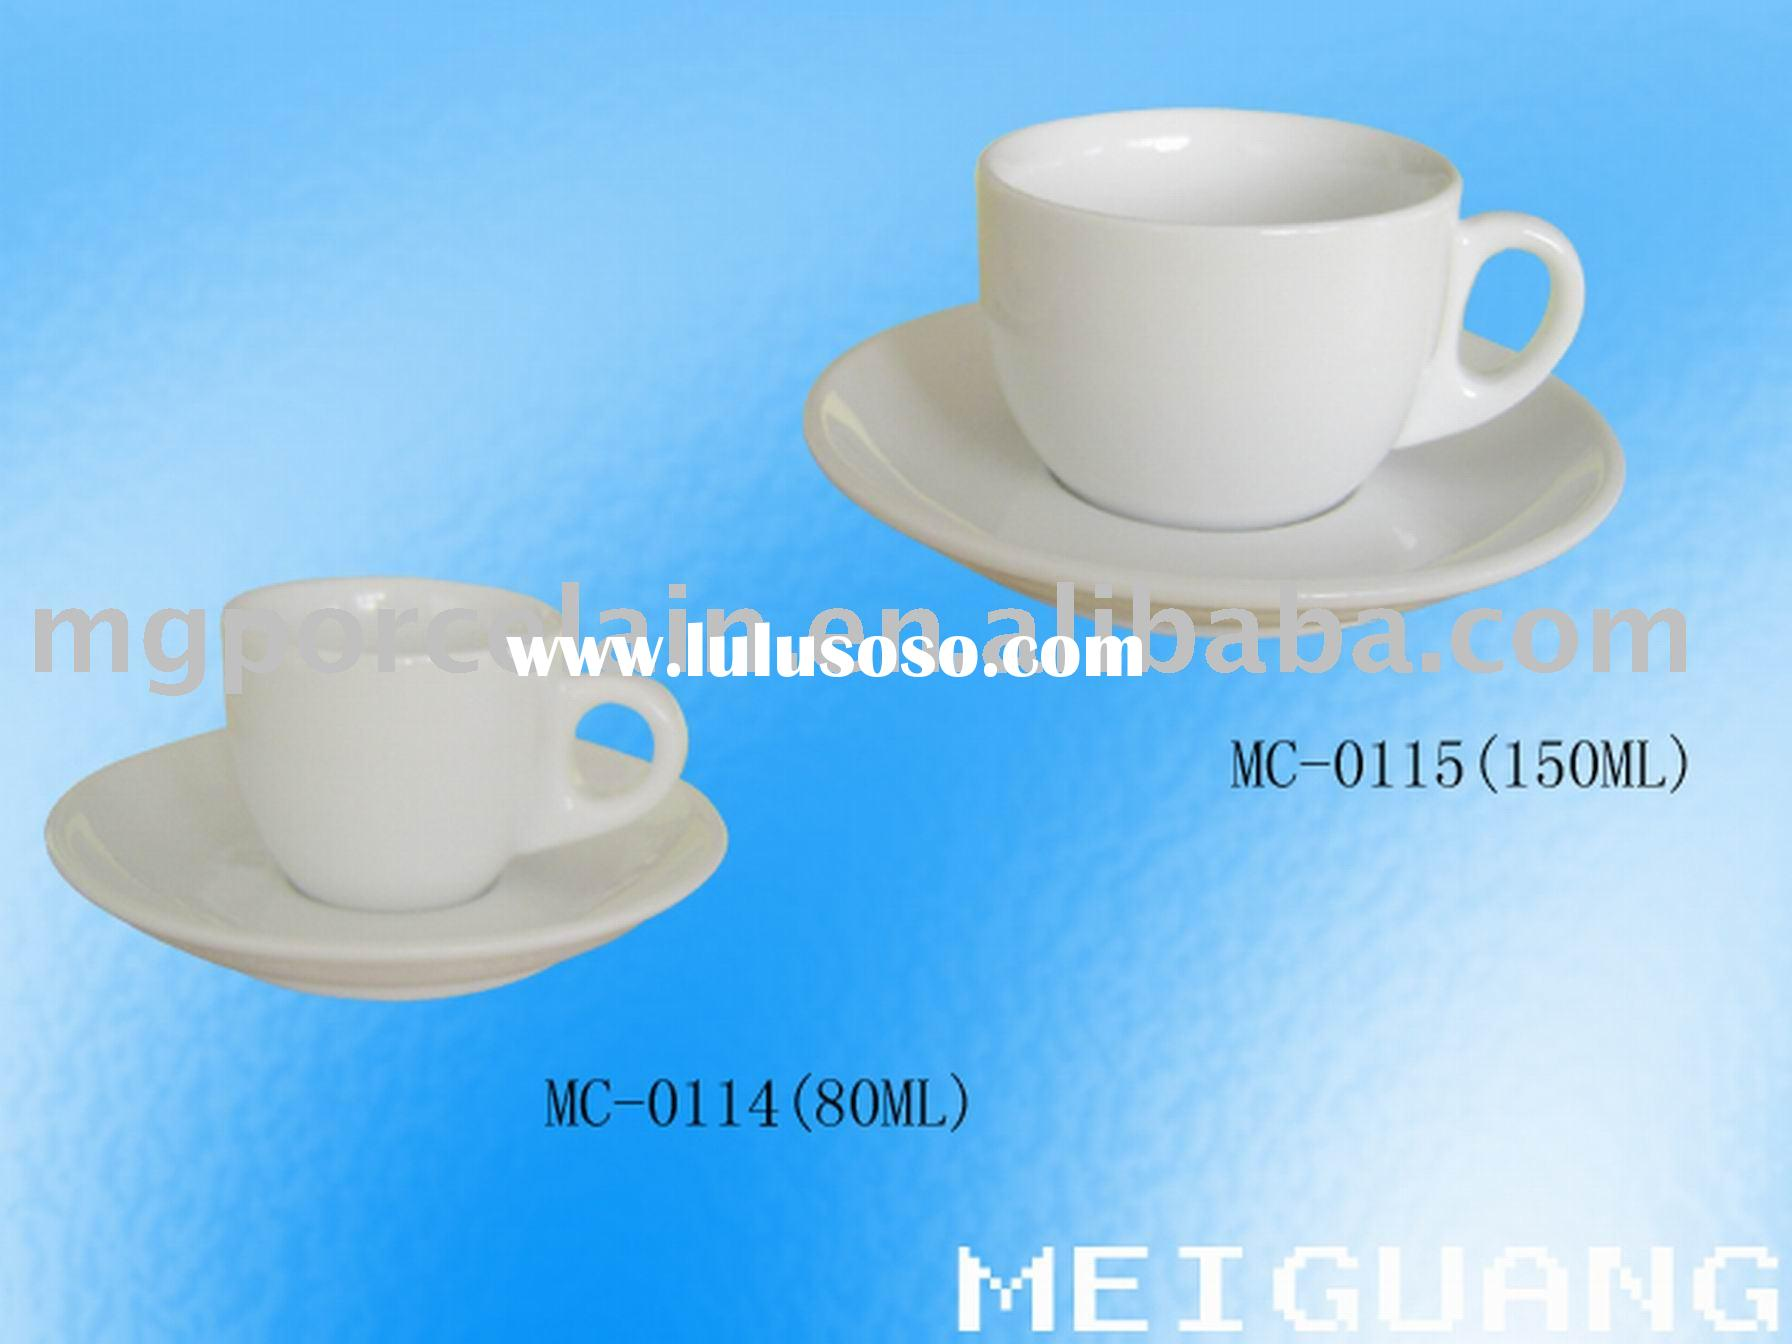 Fine Porcelain coffee cup and saucer